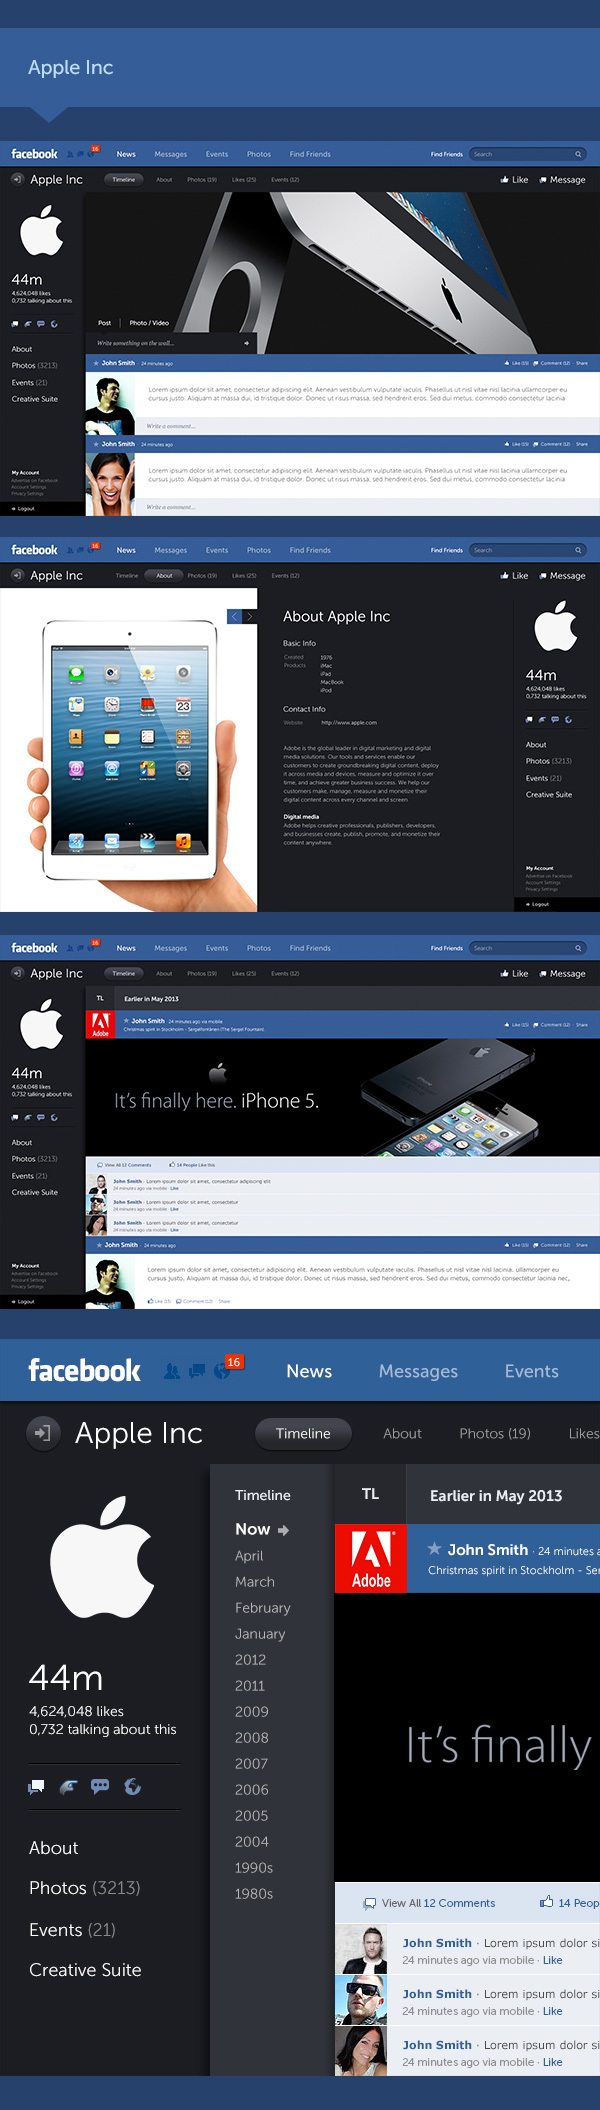 Facebook new design concept 5